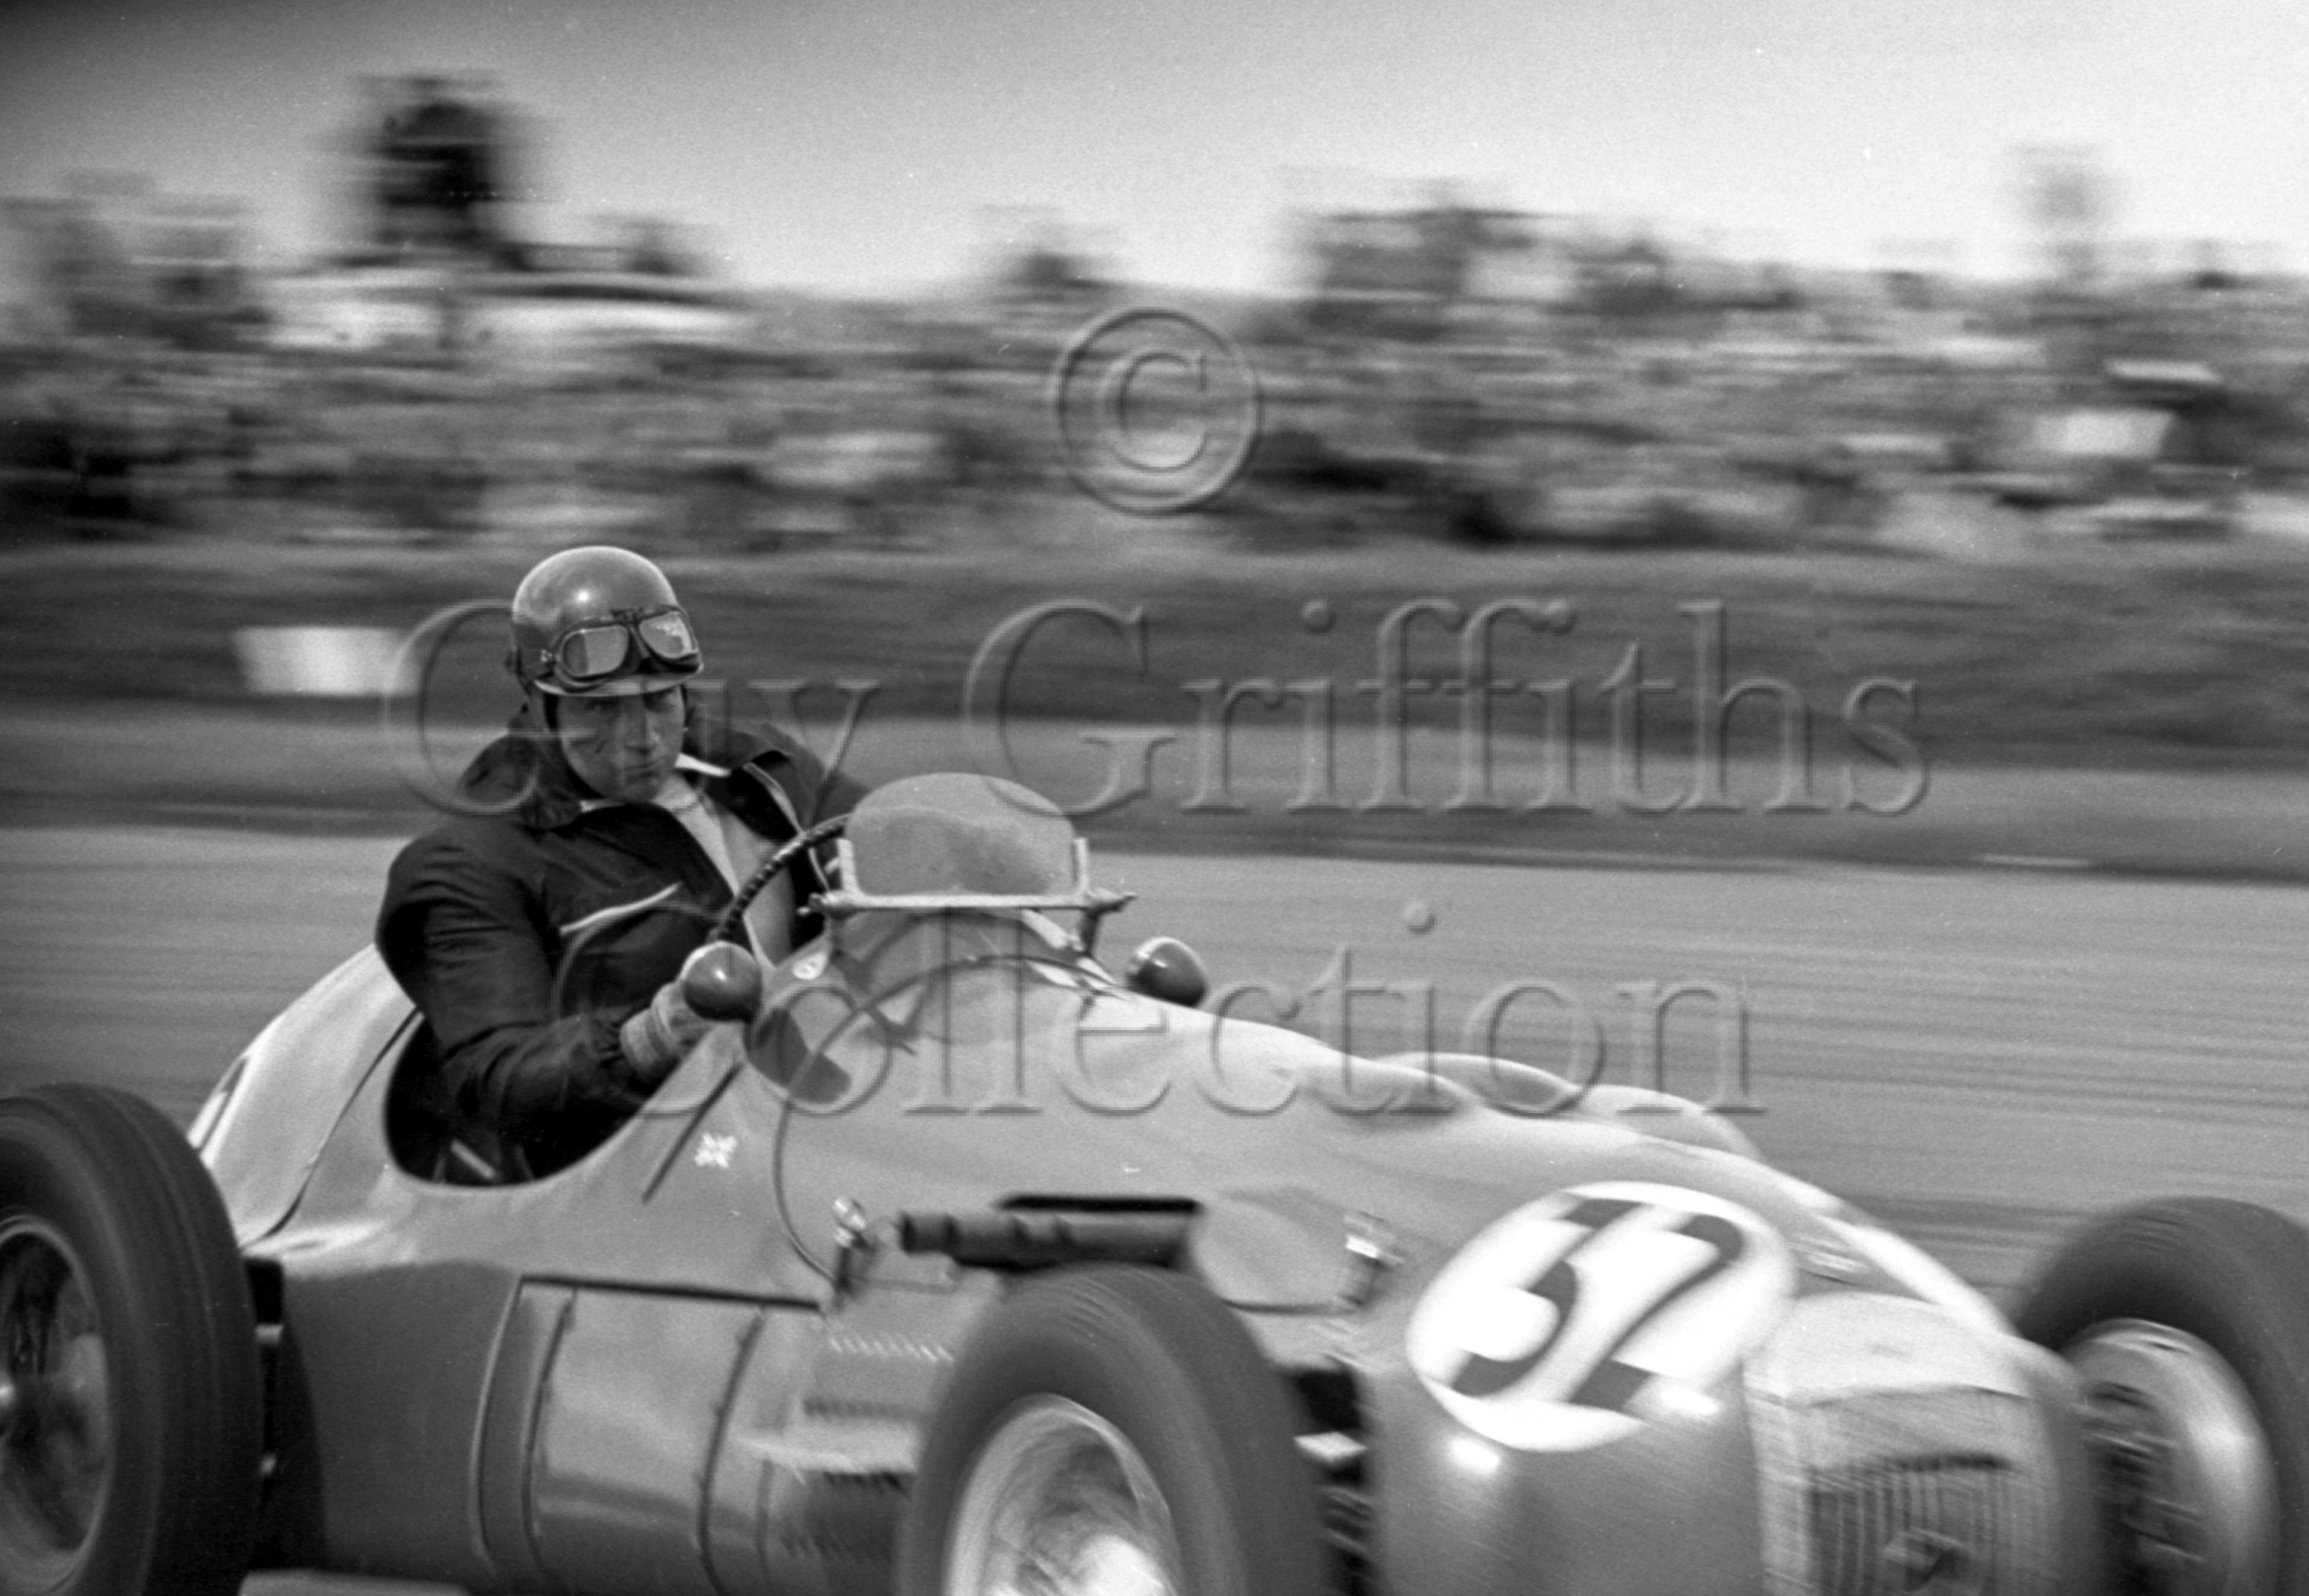 54-176–A-Rolt–HWM–Silverstone–10-05-1952.jpg - The Guy Griffiths Collection